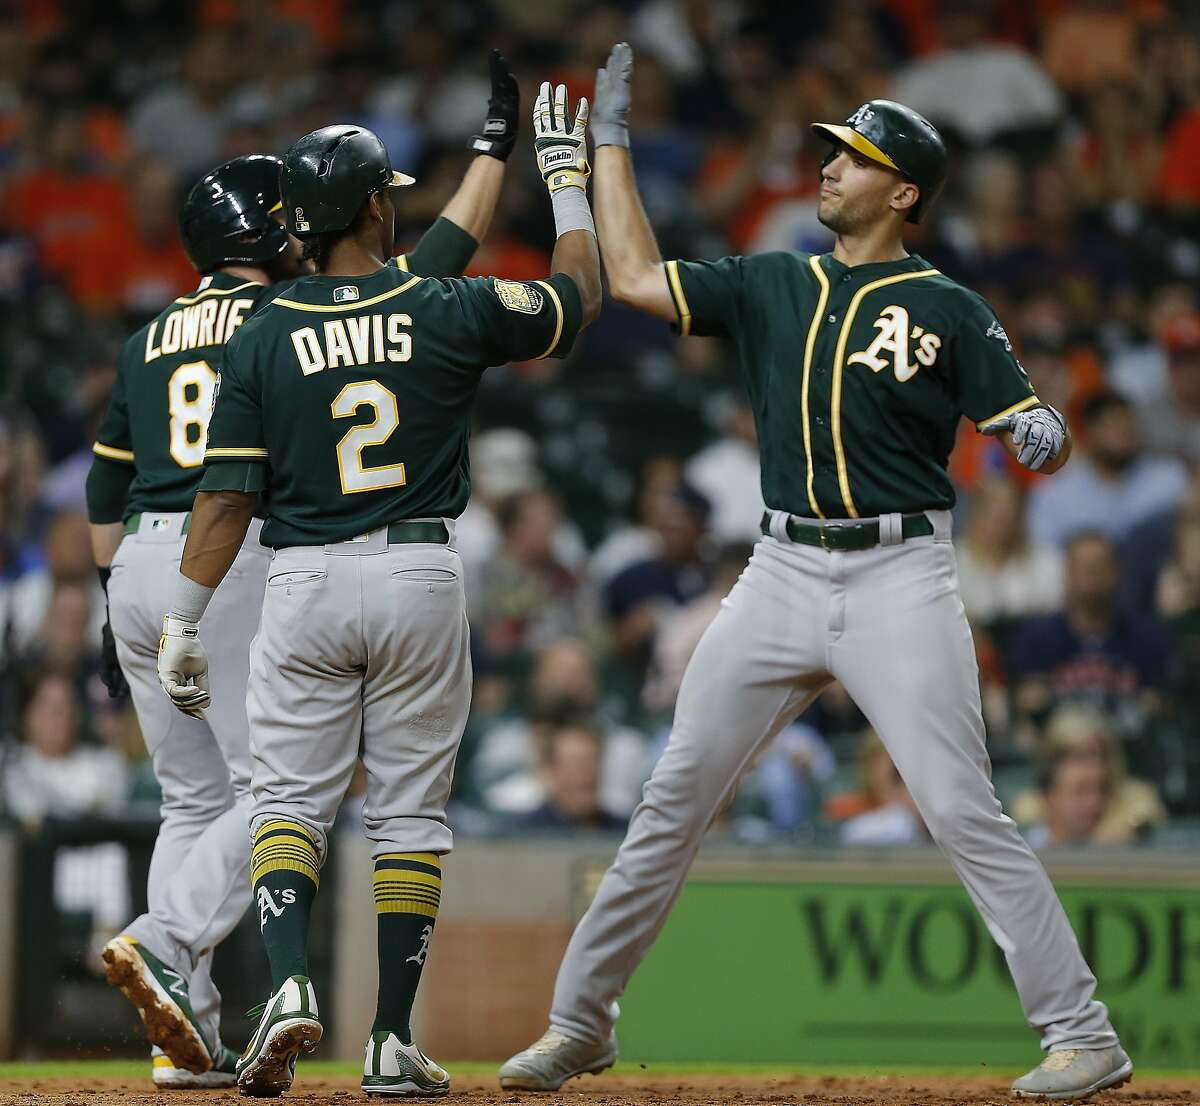 HOUSTON, TX - AUGUST 28: Matt Olson #28 of the Oakland Athletics receives high fives from Khris Davis #2 and Jed Lowrie #8 after hitting a home run in the third inning against the Houston Astros at Minute Maid Park on August 28, 2018 in Houston, Texas. (Photo by Bob Levey/Getty Images)